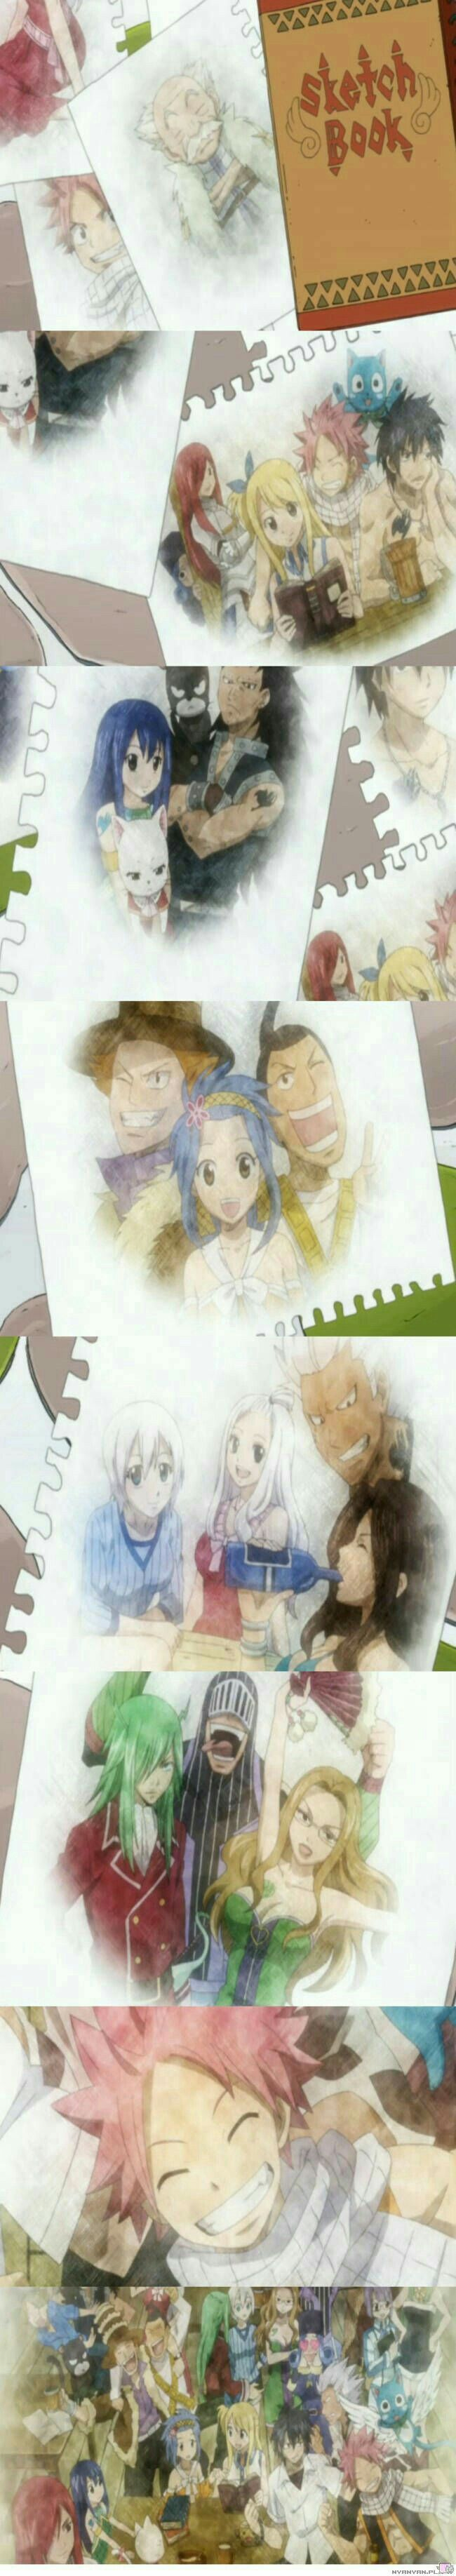 Fairy Tail characters, smiling, guild, pictures, paintings, sketches, sketchbook, text; Fairy Tail